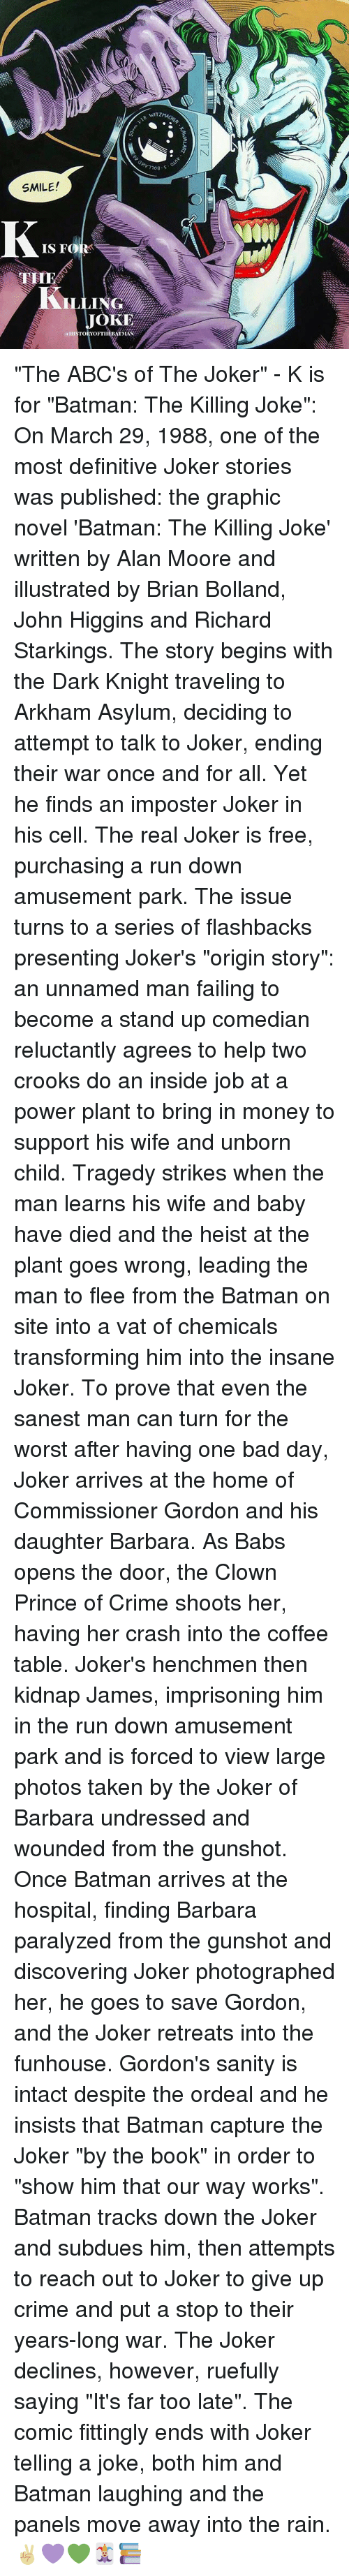 "Kidnaped: (TZMACHER  vlETZM4  Qhy7708  7708-S  SMILE!  IS FOR  .LING  JOKE  HISTORYOFI'llEBAT3Lse..  WITZ  KAWALAR2  K ""The ABC's of The Joker"" - K is for ""Batman: The Killing Joke"": On March 29, 1988, one of the most definitive Joker stories was published: the graphic novel 'Batman: The Killing Joke' written by Alan Moore and illustrated by Brian Bolland, John Higgins and Richard Starkings. The story begins with the Dark Knight traveling to Arkham Asylum, deciding to attempt to talk to Joker, ending their war once and for all. Yet he finds an imposter Joker in his cell. The real Joker is free, purchasing a run down amusement park. The issue turns to a series of flashbacks presenting Joker's ""origin story"": an unnamed man failing to become a stand up comedian reluctantly agrees to help two crooks do an inside job at a power plant to bring in money to support his wife and unborn child. Tragedy strikes when the man learns his wife and baby have died and the heist at the plant goes wrong, leading the man to flee from the Batman on site into a vat of chemicals transforming him into the insane Joker. To prove that even the sanest man can turn for the worst after having one bad day, Joker arrives at the home of Commissioner Gordon and his daughter Barbara. As Babs opens the door, the Clown Prince of Crime shoots her, having her crash into the coffee table. Joker's henchmen then kidnap James, imprisoning him in the run down amusement park and is forced to view large photos taken by the Joker of Barbara undressed and wounded from the gunshot. Once Batman arrives at the hospital, finding Barbara paralyzed from the gunshot and discovering Joker photographed her, he goes to save Gordon, and the Joker retreats into the funhouse. Gordon's sanity is intact despite the ordeal and he insists that Batman capture the Joker ""by the book"" in order to ""show him that our way works"". Batman tracks down the Joker and subdues him, then attempts to reach out to Joker to give up crime and put a stop to their years-long war. The Joker declines, however, ruefully saying ""It's far too late"". The comic fittingly ends with Joker telling a joke, both him and Batman laughing and the panels move away into the rain. ✌🏼💜💚🃏📚"